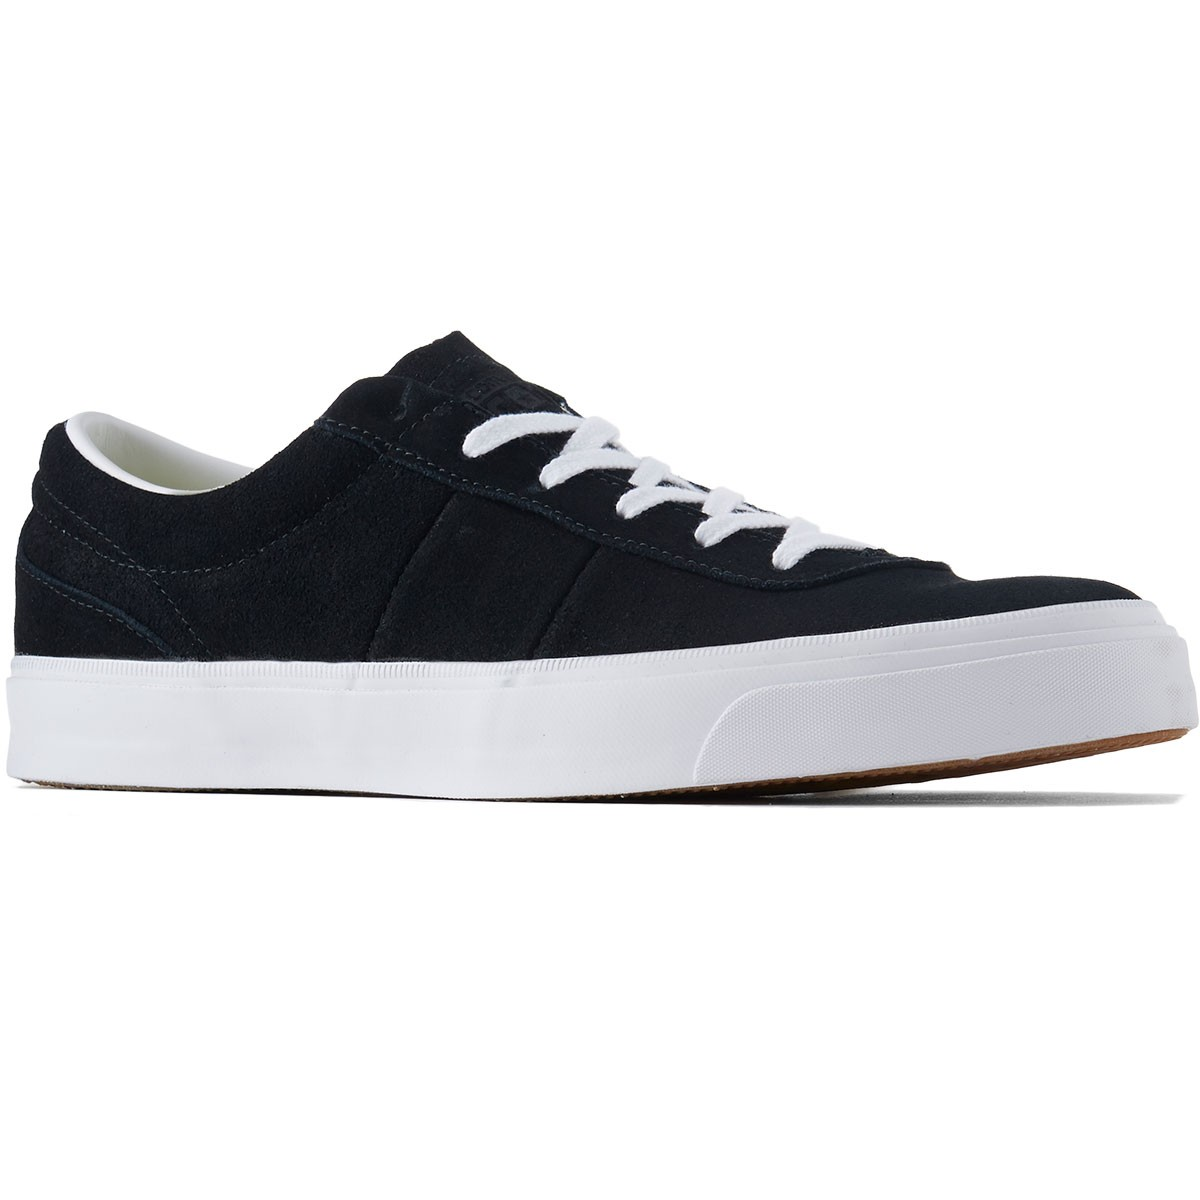 f23706756709 Converse One Star CC Pro OX Suede Shoes - Black White White - 8.0